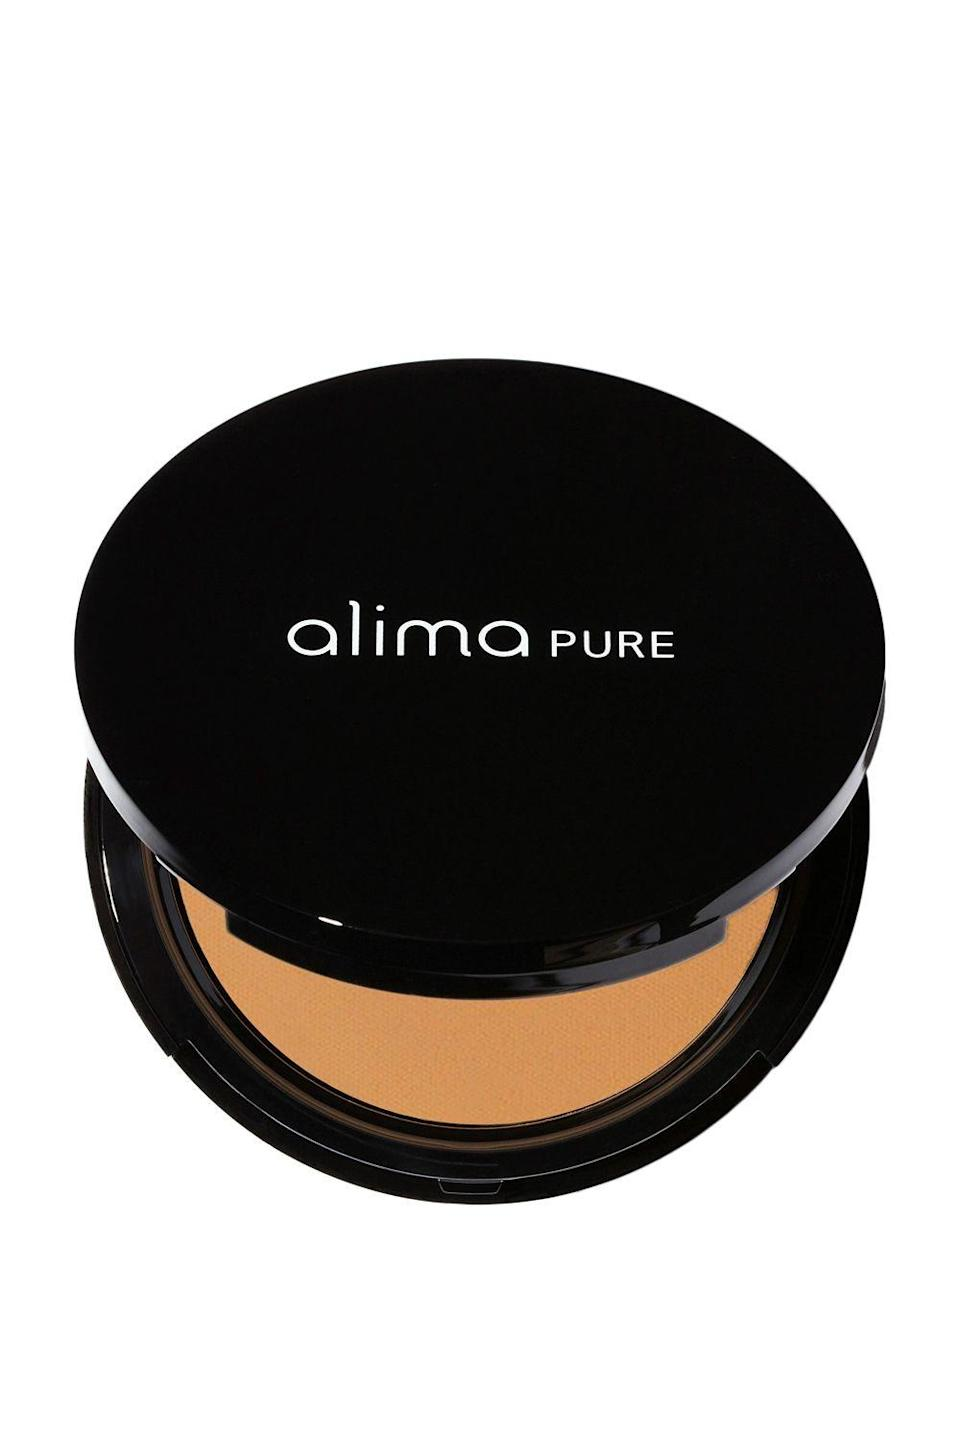 "<p><strong>Alima Pure</strong></p><p>credobeauty.com</p><p><strong>$34.00</strong></p><p><a href=""https://go.redirectingat.com?id=74968X1596630&url=https%3A%2F%2Fcredobeauty.com%2Fproducts%2Falima-pure-pressed-foundation-with-rosehip-antioxidant-complex-refills&sref=https%3A%2F%2Fwww.cosmopolitan.com%2Fstyle-beauty%2Fbeauty%2Fg33351245%2Fbest-natural-foundations%2F"" rel=""nofollow noopener"" target=""_blank"" data-ylk=""slk:Shop Now"" class=""link rapid-noclick-resp"">Shop Now</a></p><p>A few taps of this natural pressed <a href=""https://www.cosmopolitan.com/style-beauty/beauty/g26289172/best-powder-face-foundation/"" rel=""nofollow noopener"" target=""_blank"" data-ylk=""slk:powder foundation"" class=""link rapid-noclick-resp"">powder foundation</a> give skin a velvety matte finish. It comes with a soft sponge for easy application, and is infused with argan oil, aloe vera, and evening primrose oil to ensure the powder formula <strong>n</strong><strong>ever feels cakey or drying on your skin.</strong></p>"